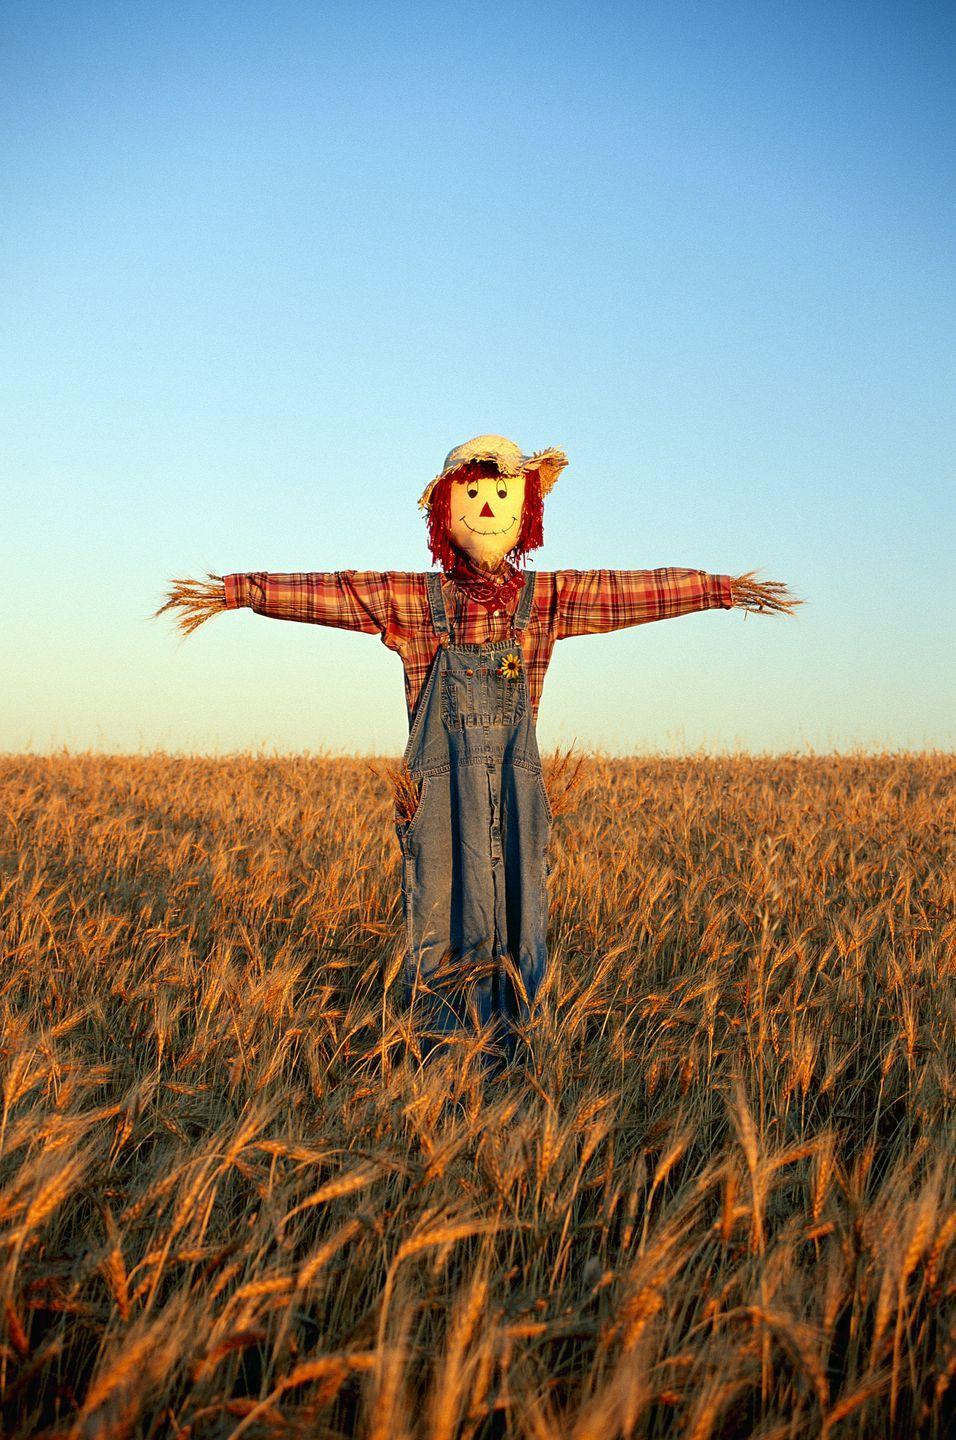 <p><strong><em>Which of the following is NOT a term for a scarecrow? Hodmedod, Murmet, Doodle sack, Hay-man, Gallybagger, Tattie Bogal, Mommet, Mawkin, Bwbach<strong>.</strong></em></strong></p><p><strong><strong>Answer:</strong> </strong>Doodle Sack. Which is an English word for a bagpipe. Either way you look at it, while the Scarecrow may not have had a heart, he does go by a lot of names!<strong><br></strong></p>